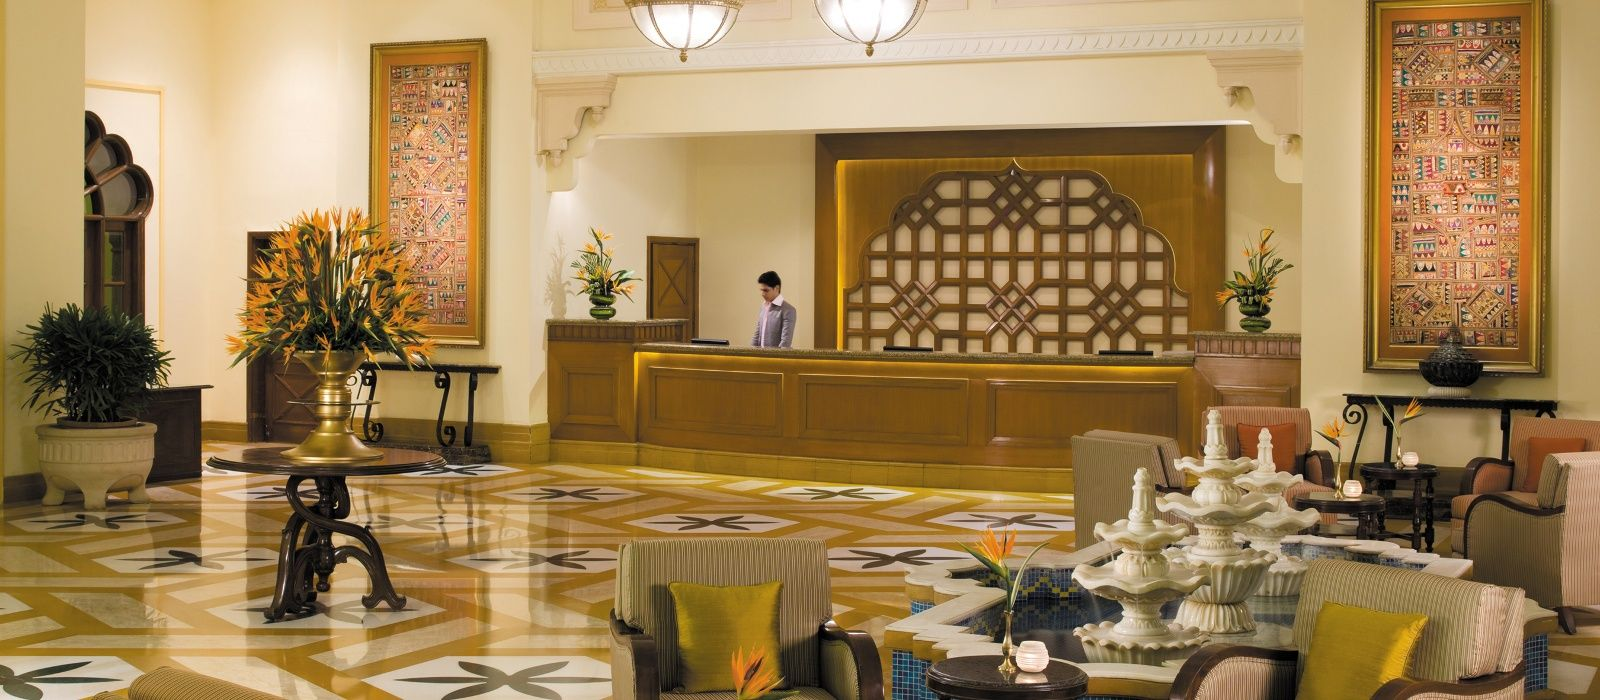 Hotel Vivanta by Taj – Hari Mahal North India